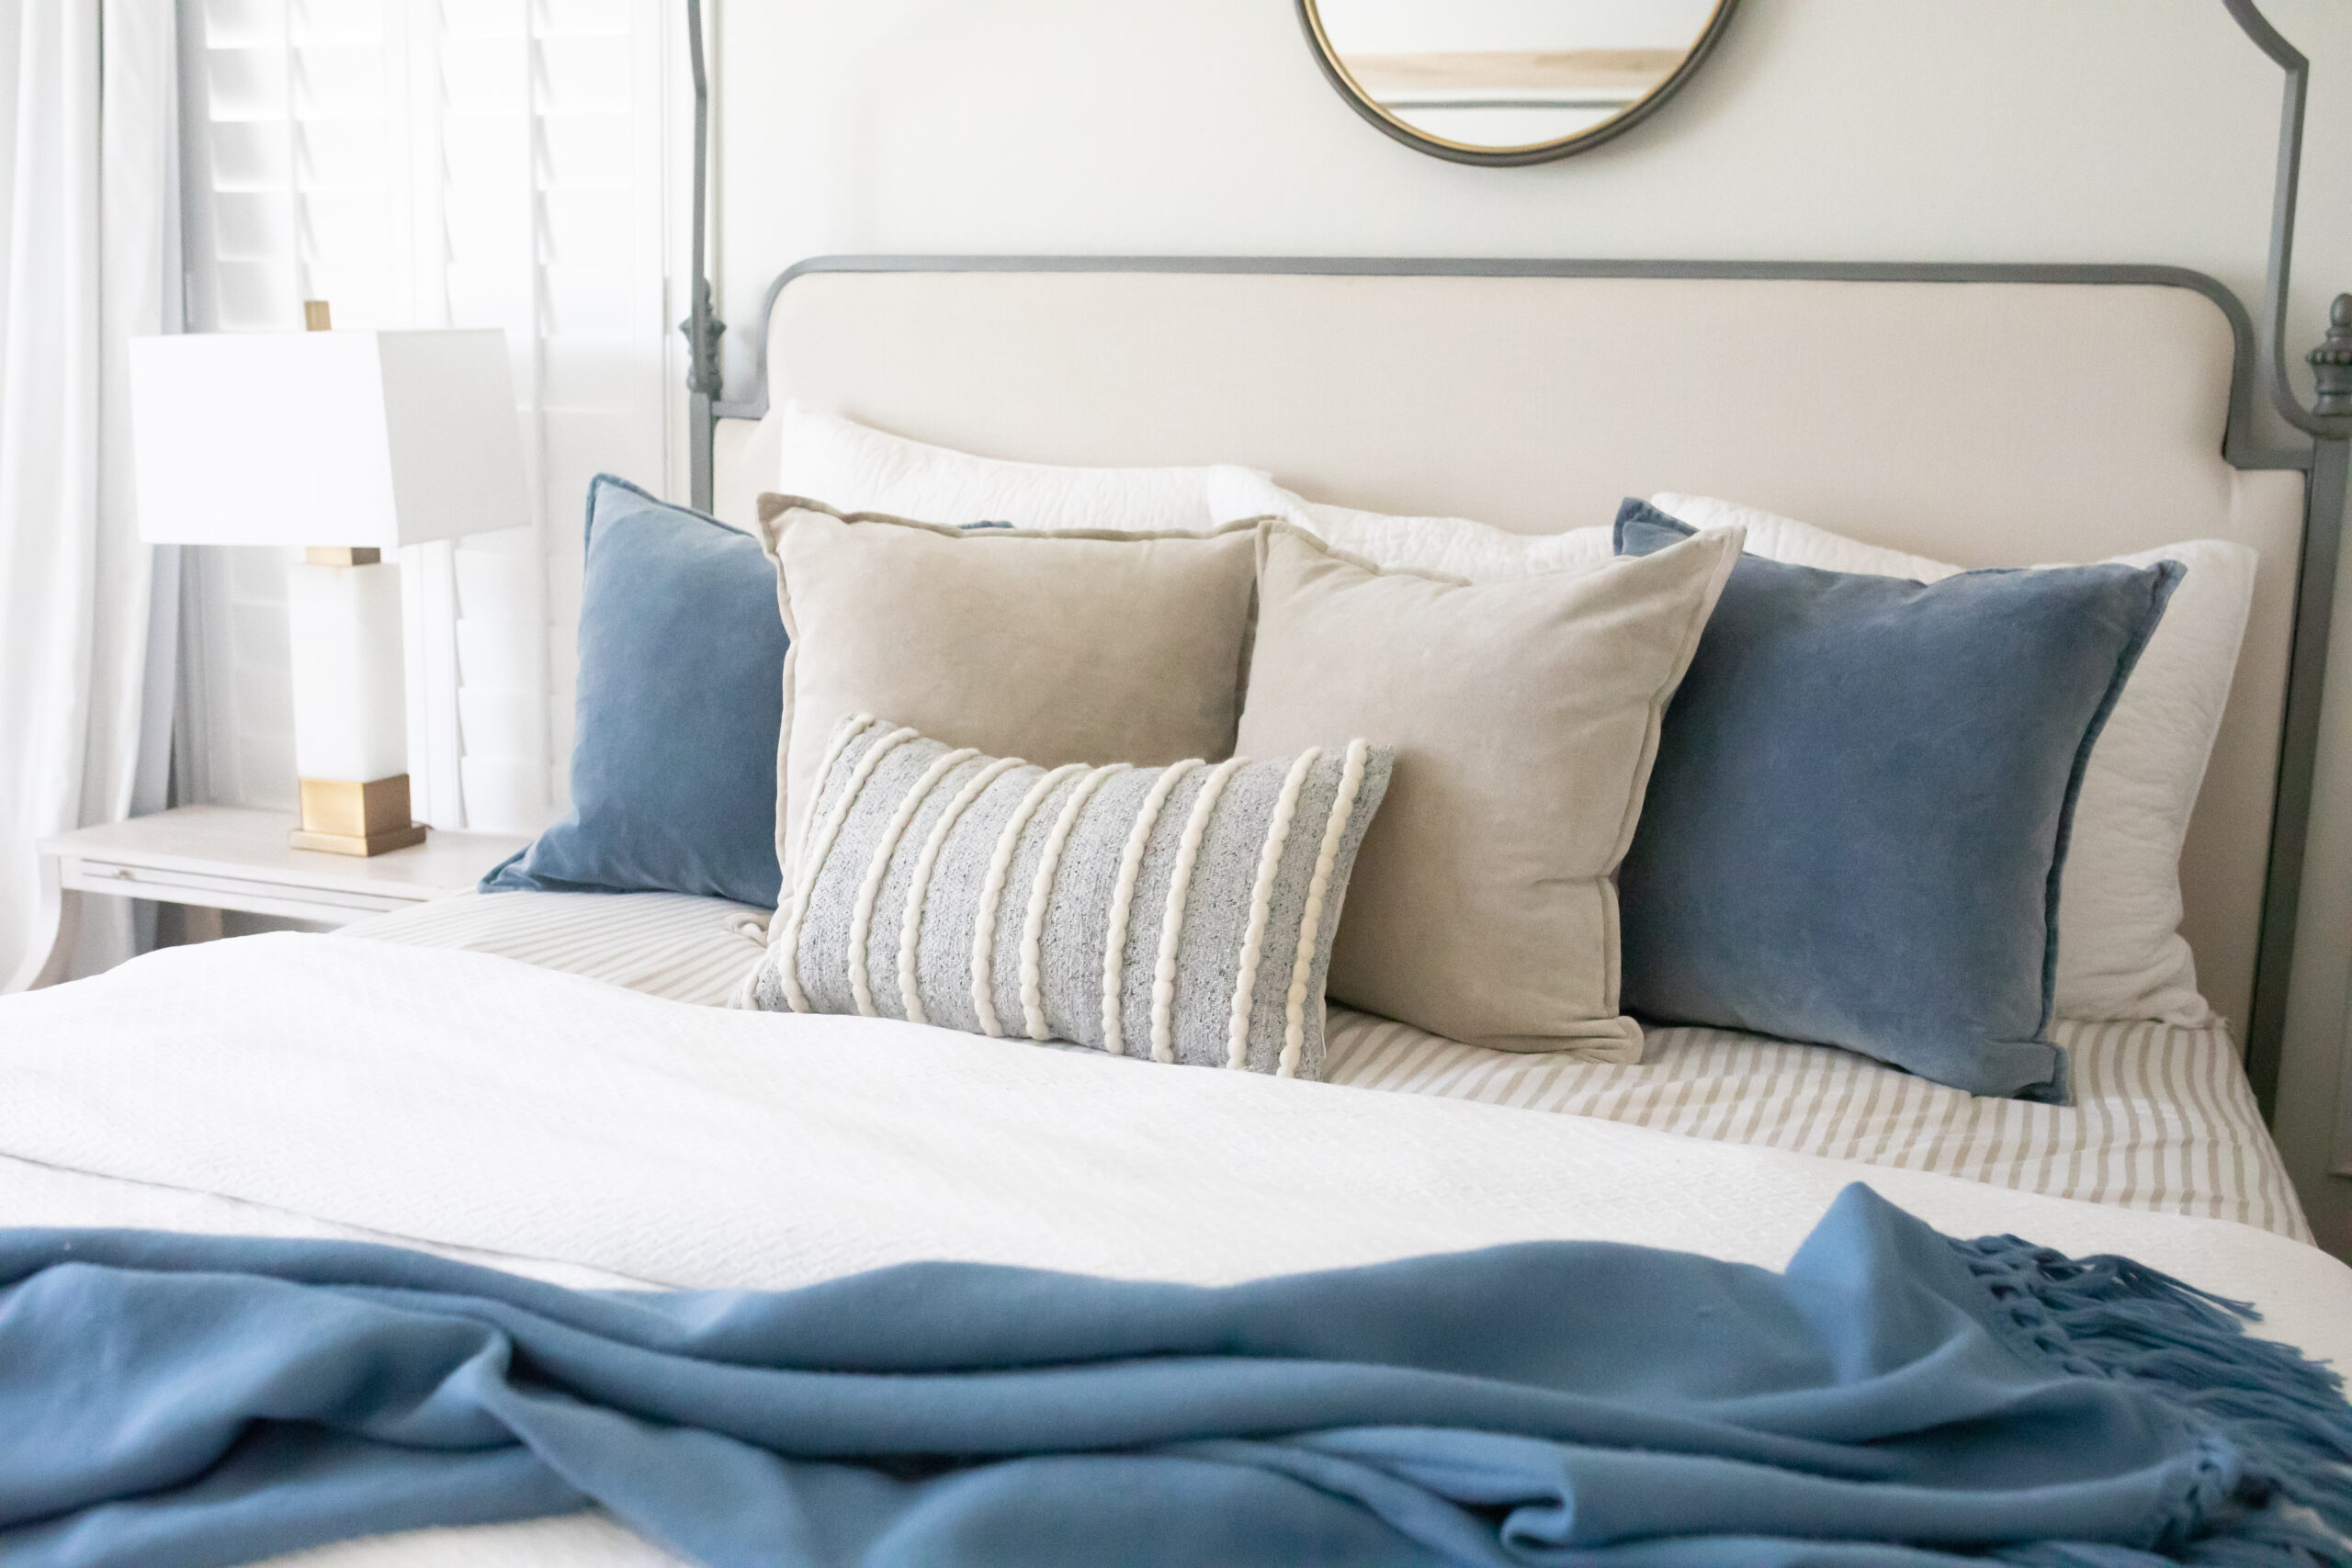 Arhaus Throw Pillows for the bed